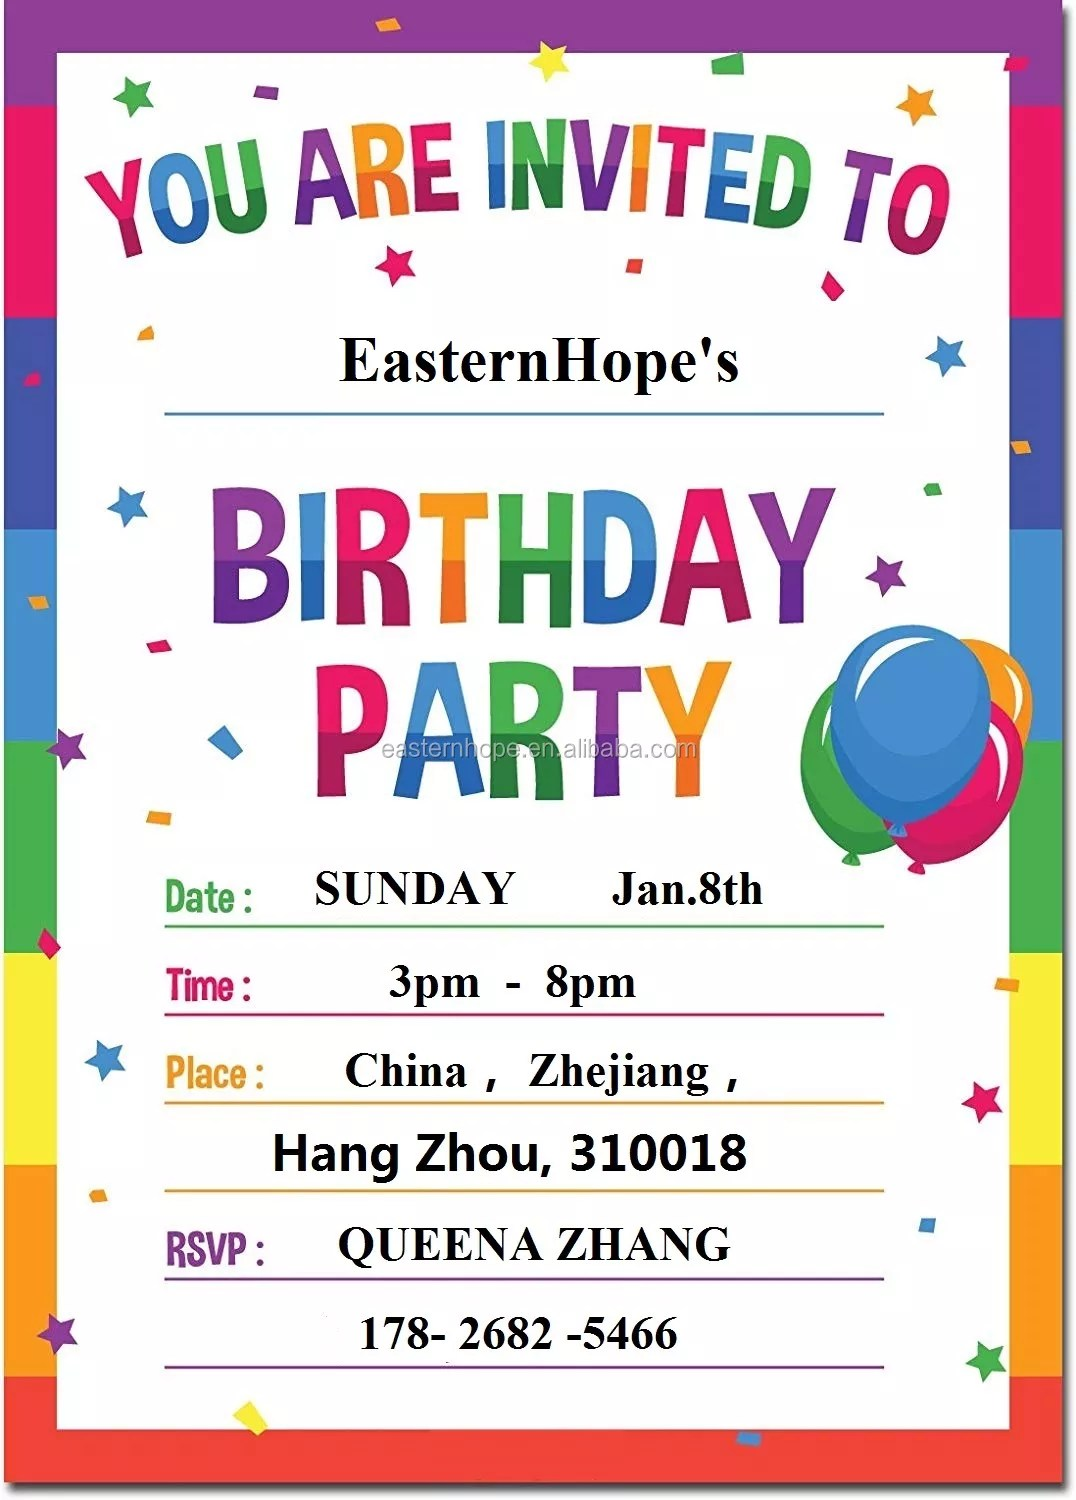 easternhope 15 pack rainbow birthday invitations cards with envelopes kids birthday party for boys or girls buy invitation cards birthday invitation